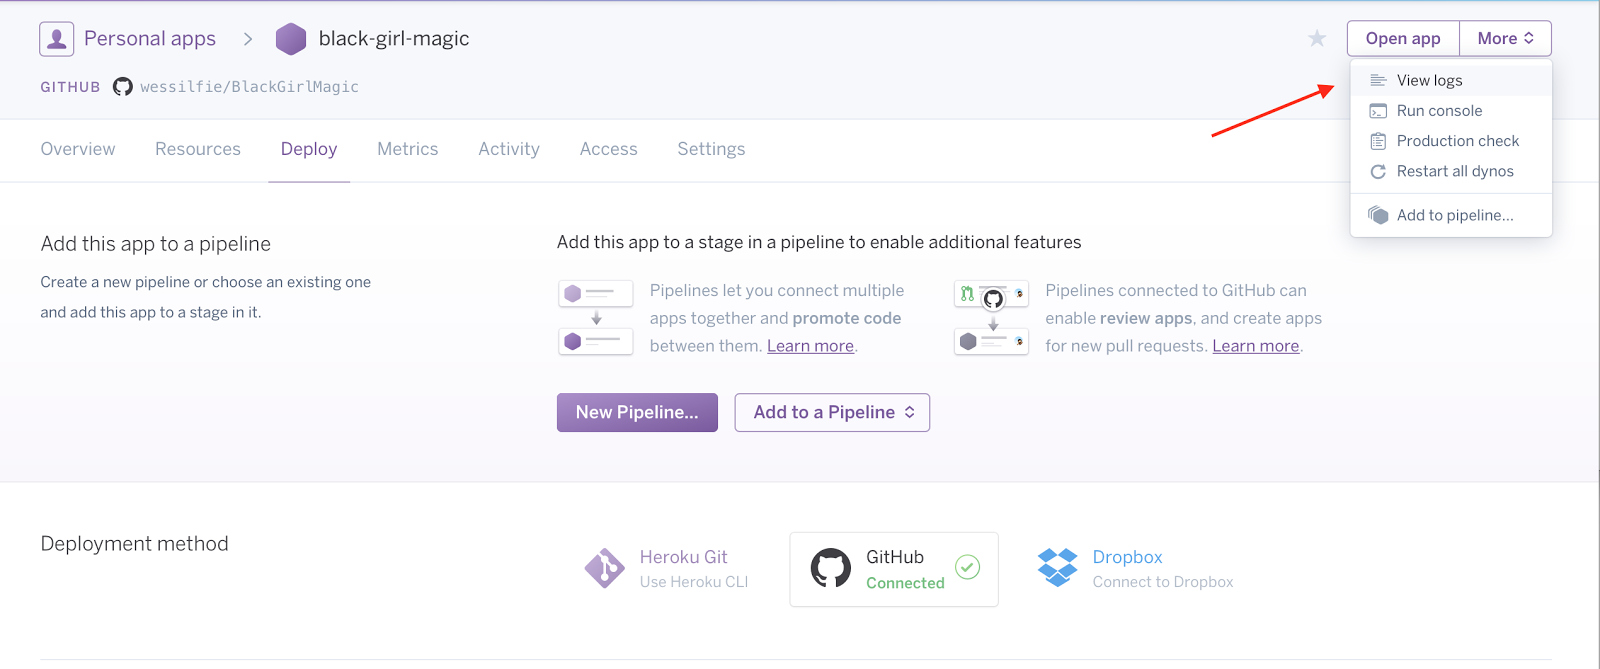 How to view logs in Heroku